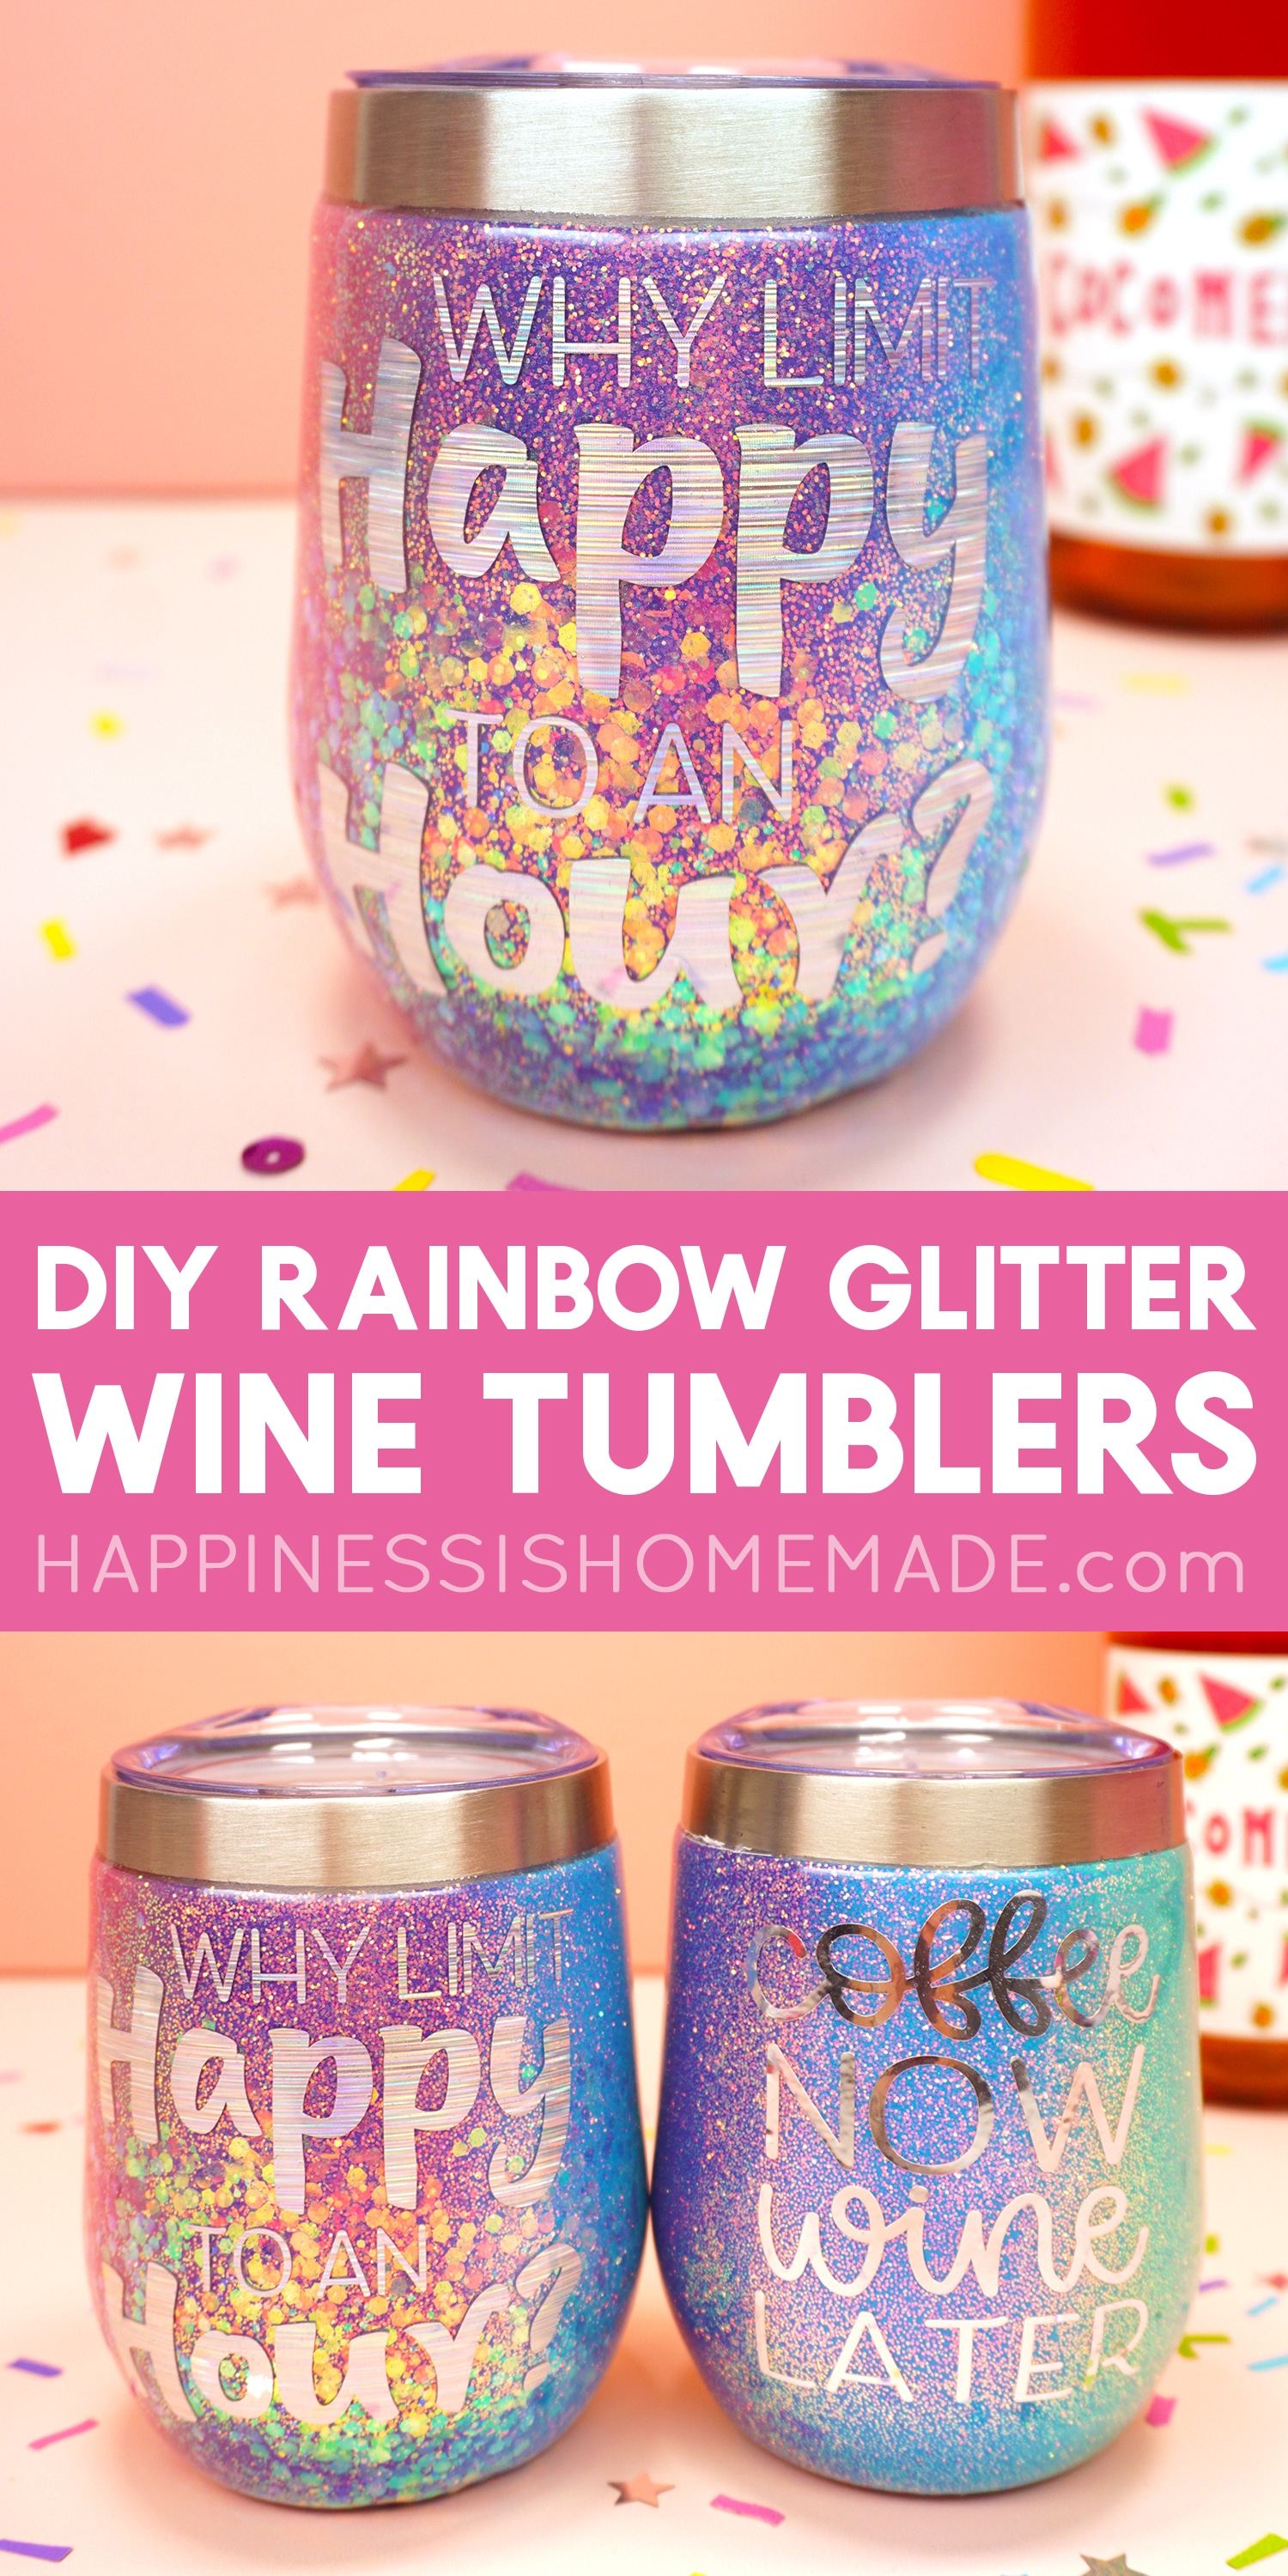 DIY Rainbow Glitter Tumblers: Learn how to make a rainbow glitter tumbler - perfect for wine and coffee! Makes a great personalized gift idea that you can easily customize with any colors and designs!These wine tumblers are super fun and easy to make! #DIYGiftIdea #GiftIdeas #GlitterTumbler #Tumblers #Crafts via @hihomemadeblog